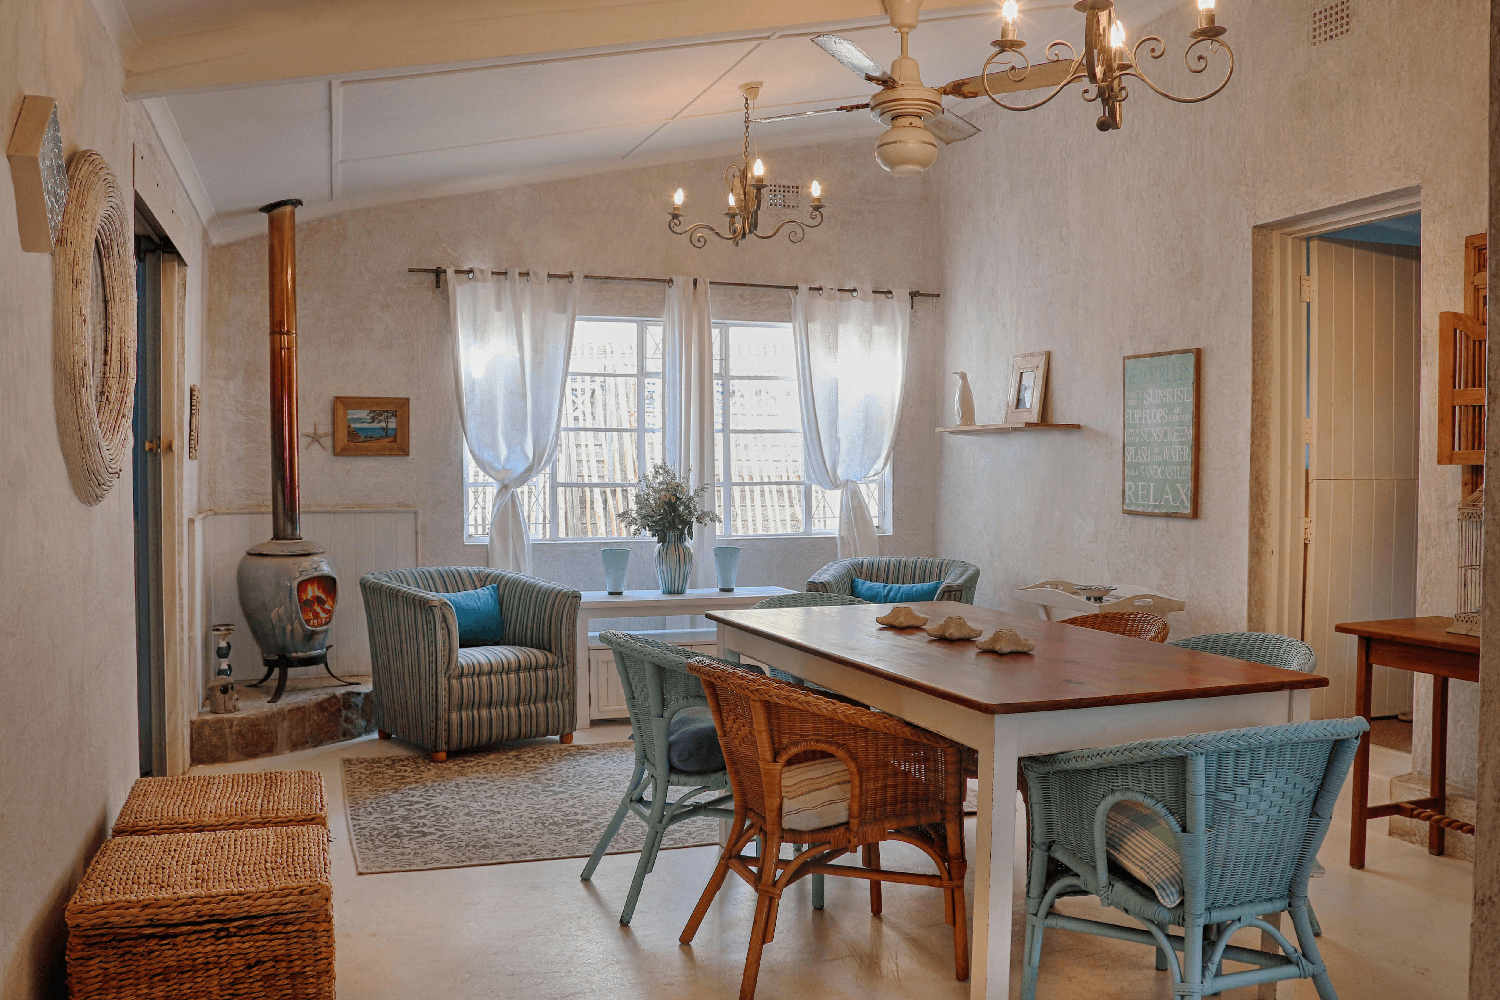 Kenton on sea Beach Cottages Accommodation – Out of the Blue – Dining Room